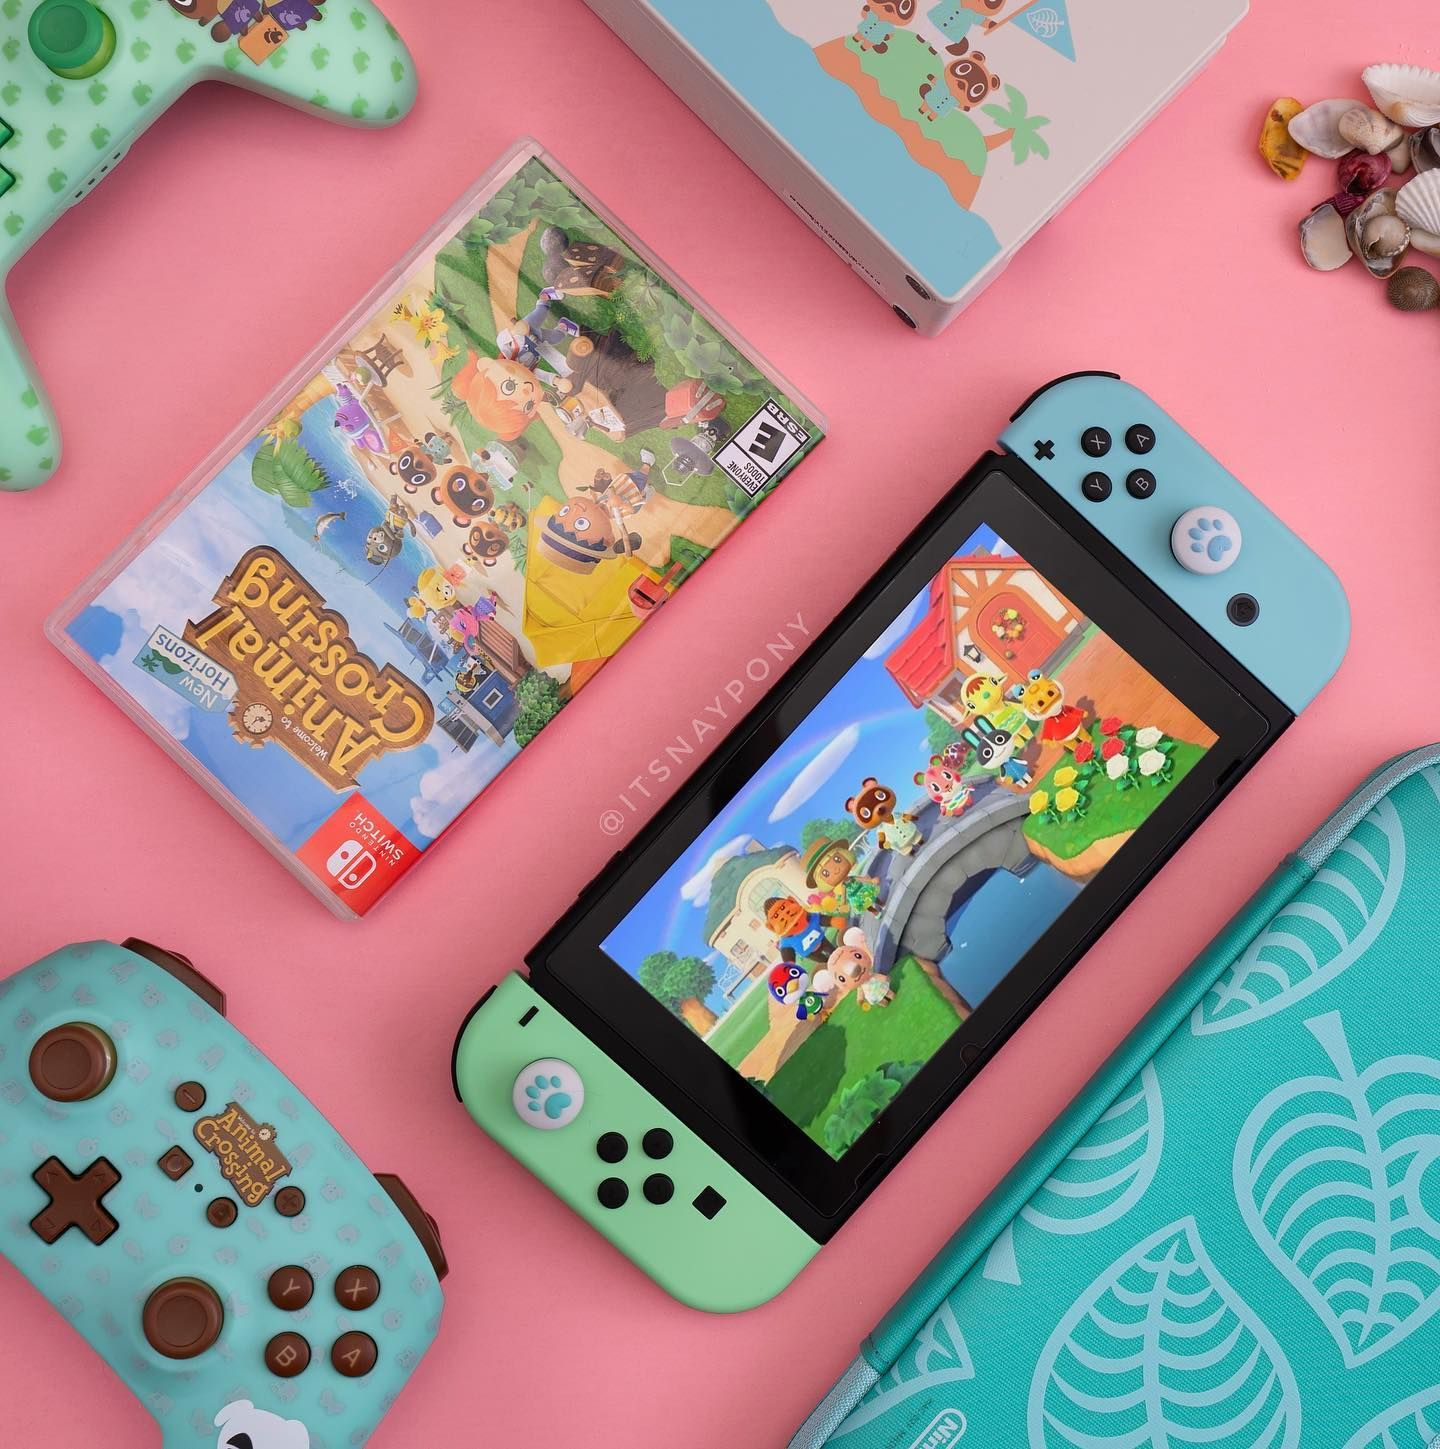 19++ Animal crossing xbox one images